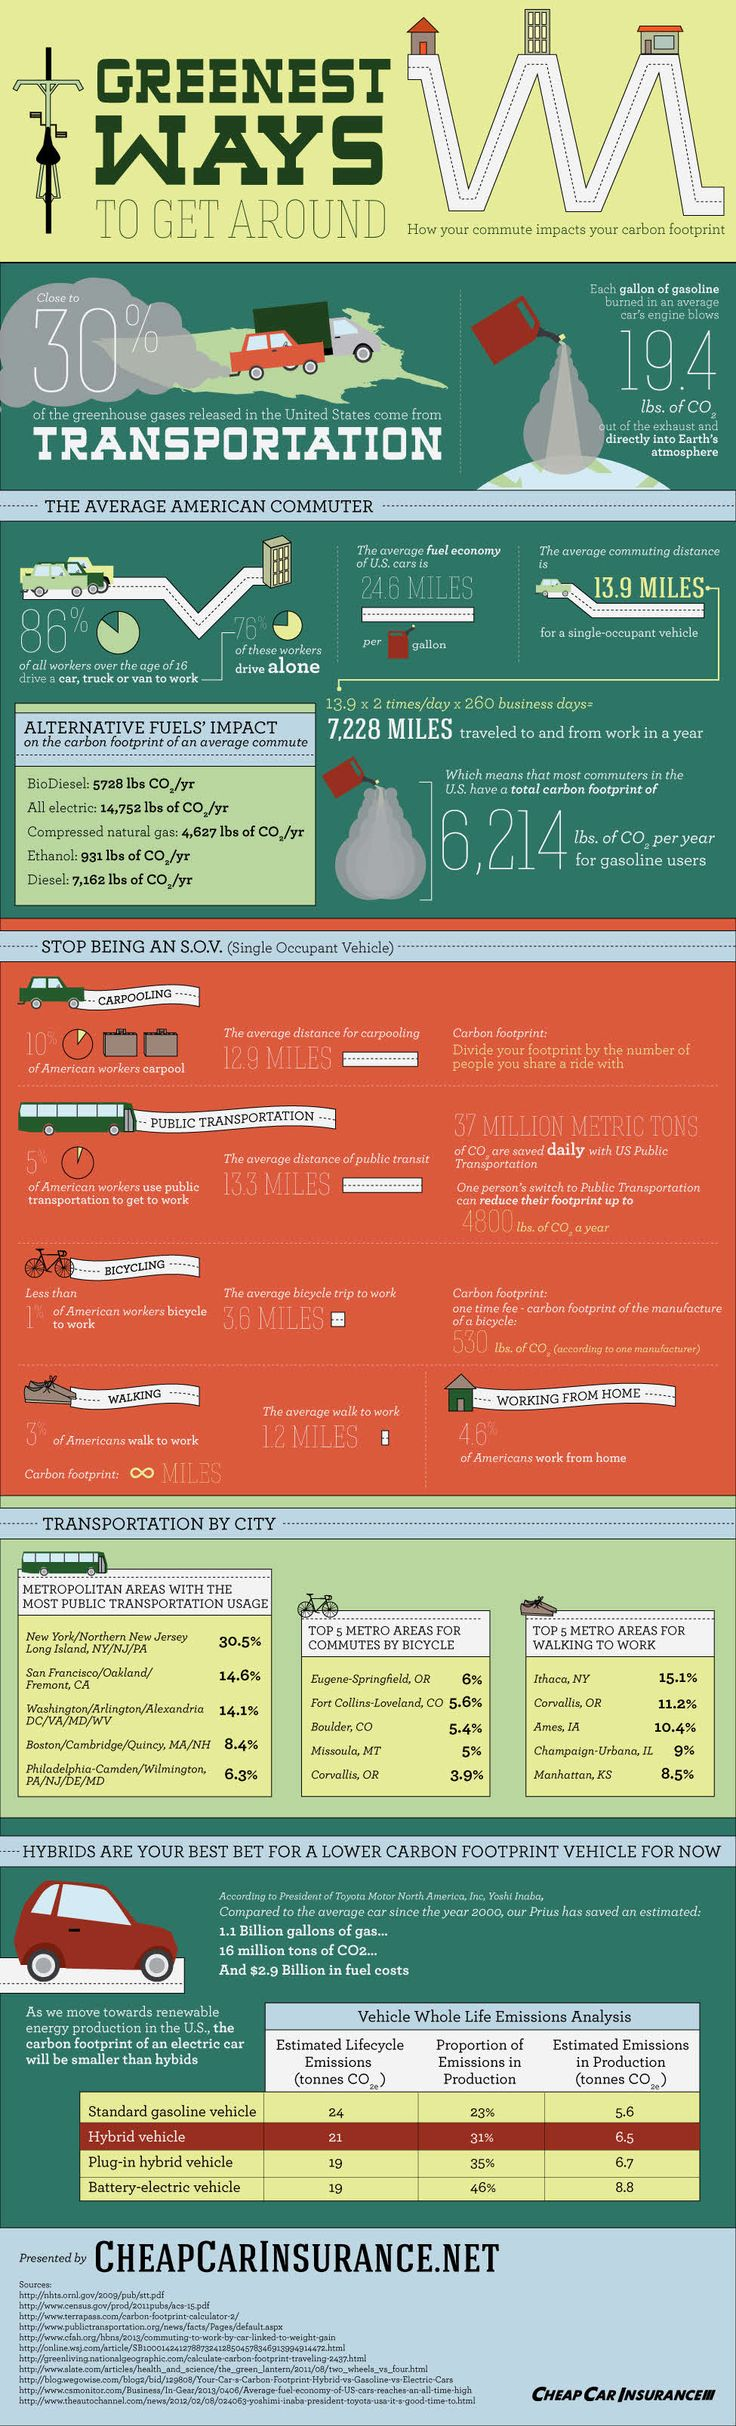 Green Travel Infographic - http://infographicality.com/green-travel-infographic/